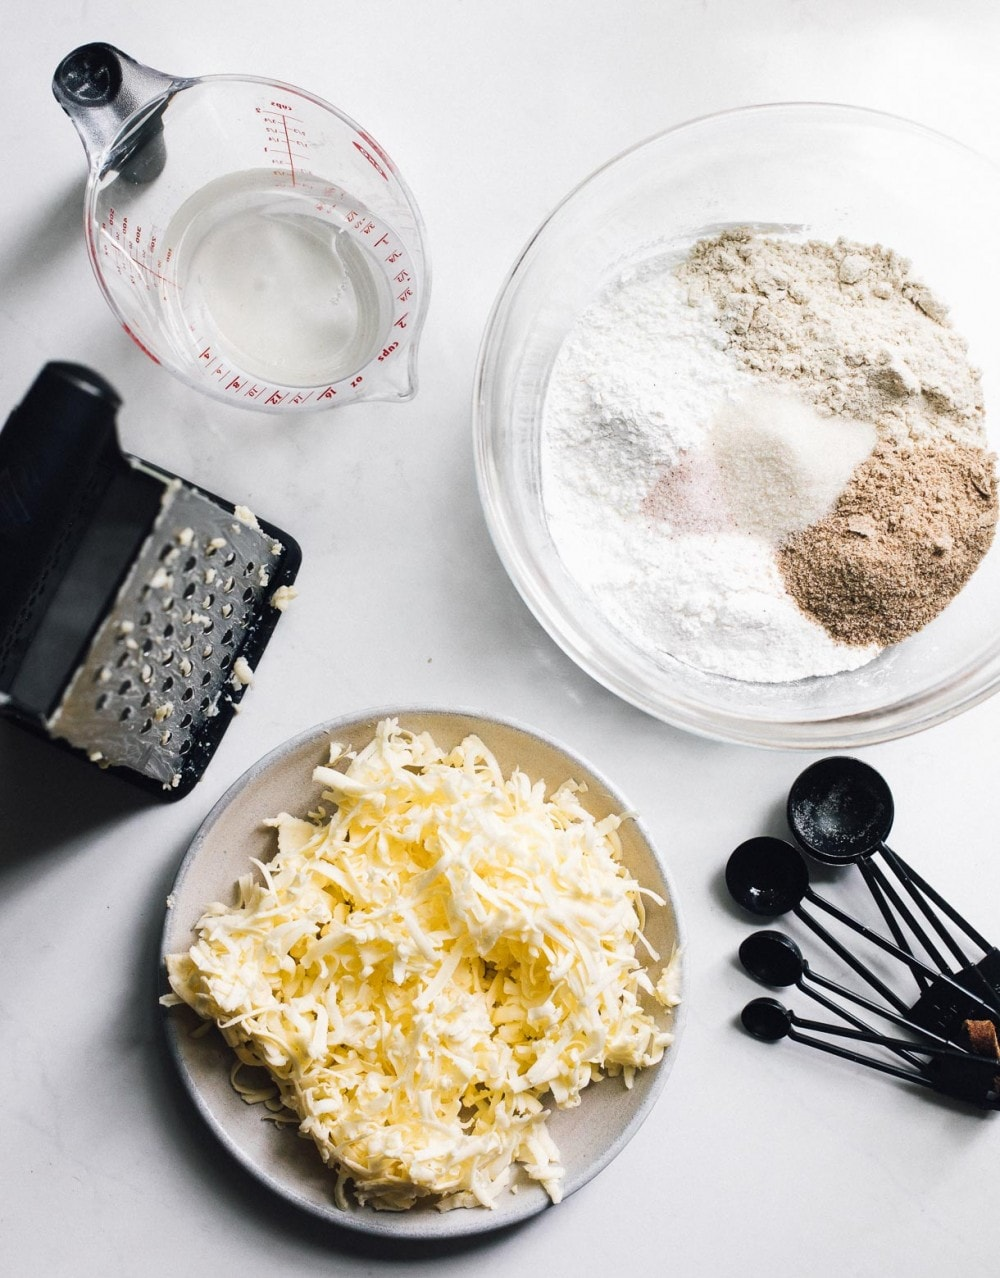 ingredients for gluten free pie crust